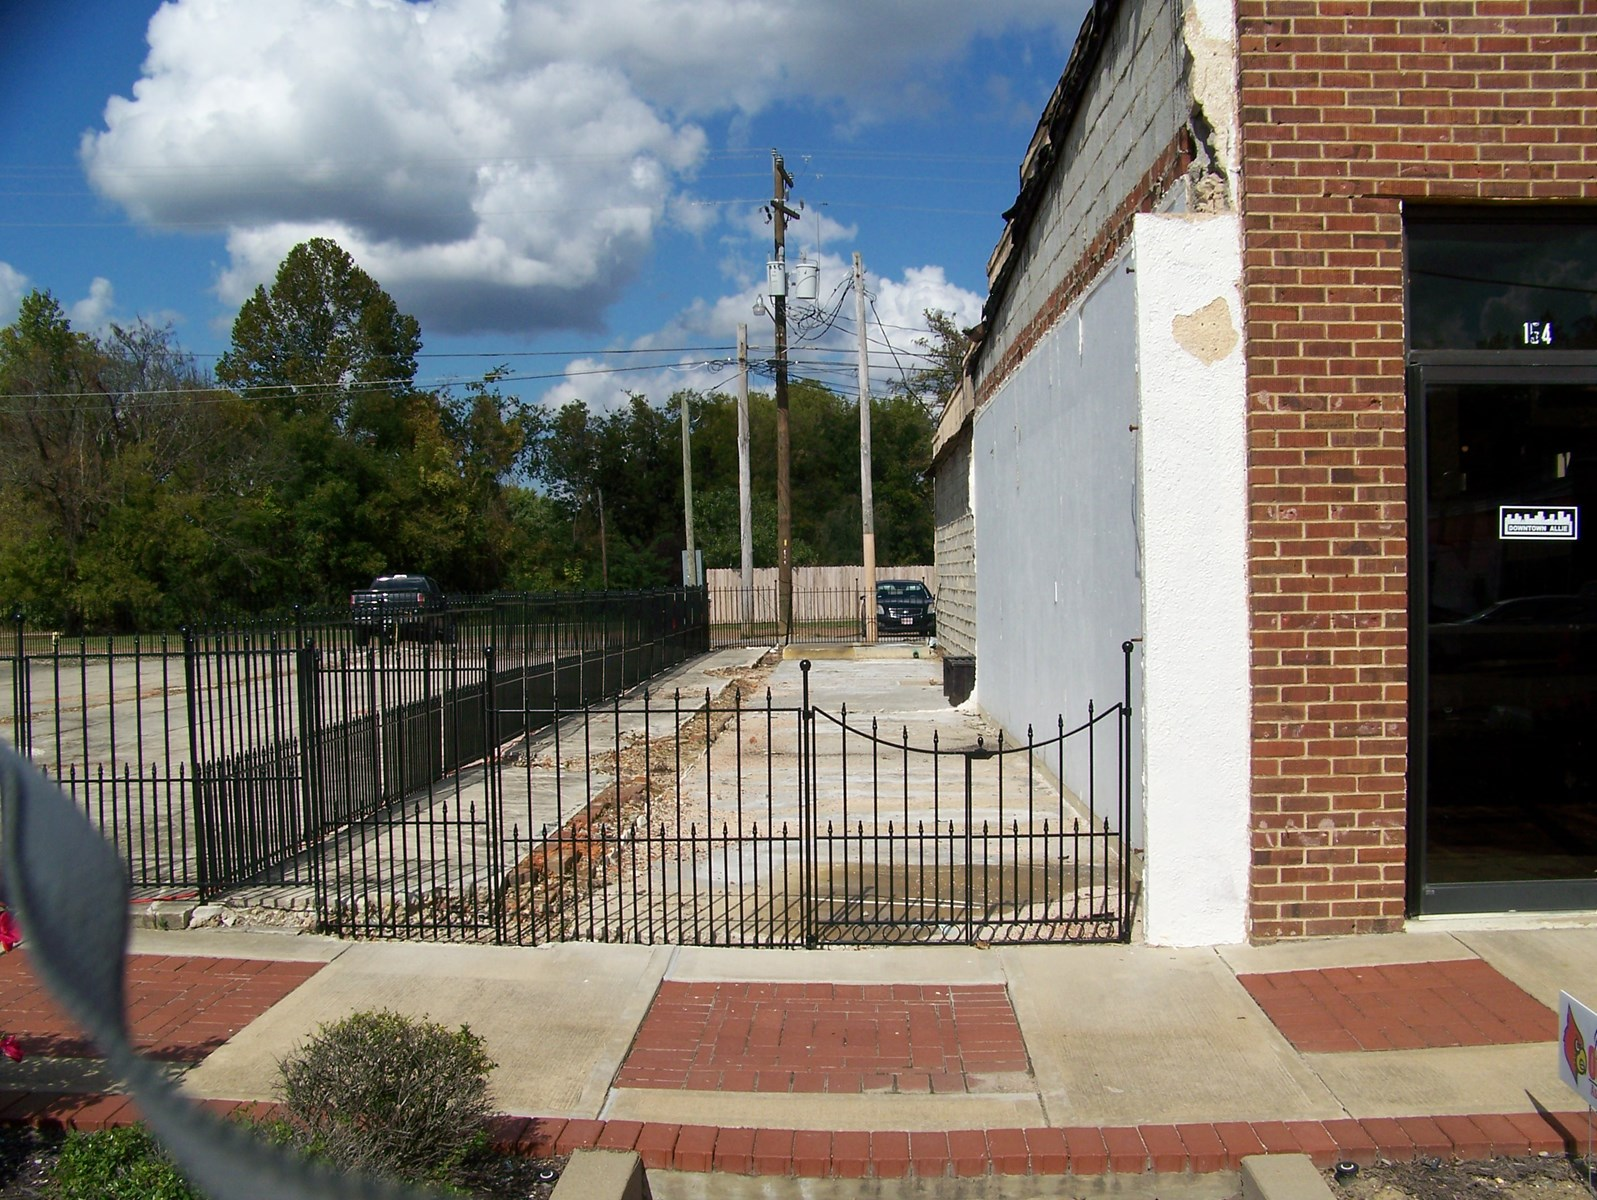 PRIME COMMERCIAL LOT FOR SALE IN ADAMSVILLE, TN